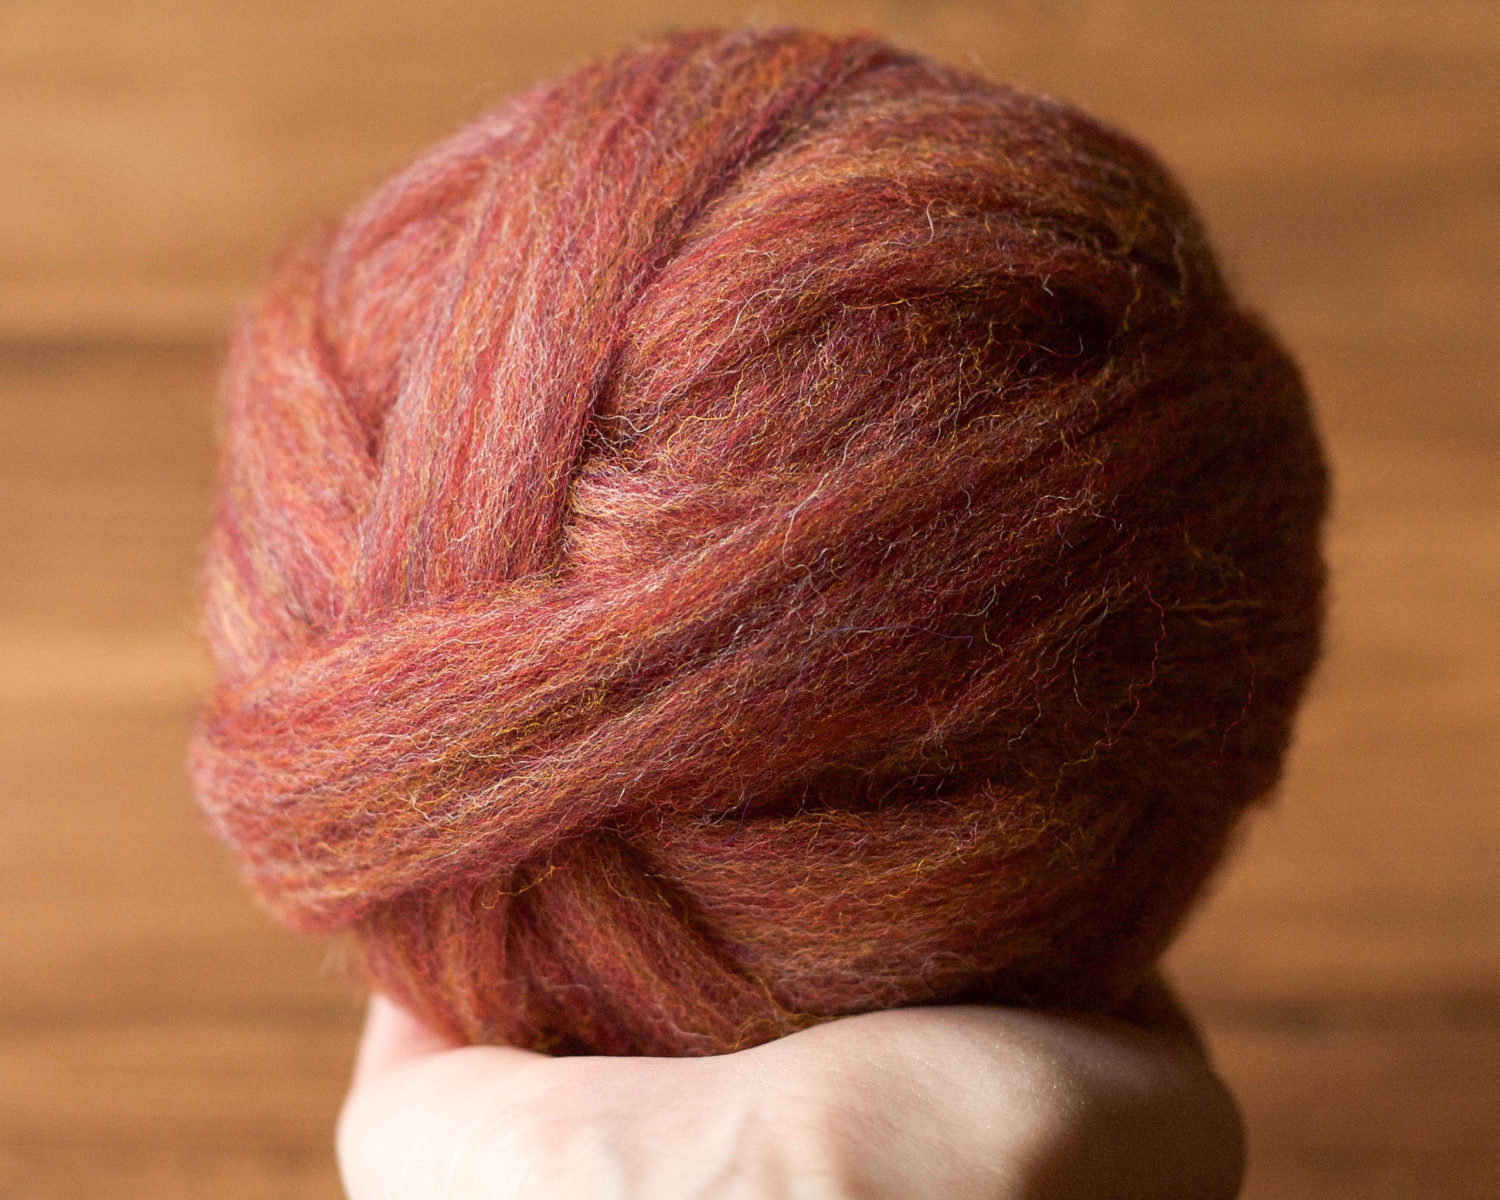 Wool Roving Supply, Needle Felting Wool in Currant Red, Brown, Pink, Wet Felting, Spinning, Chunky Yarn, Weaving, DIY, Felt, Fiber Arts